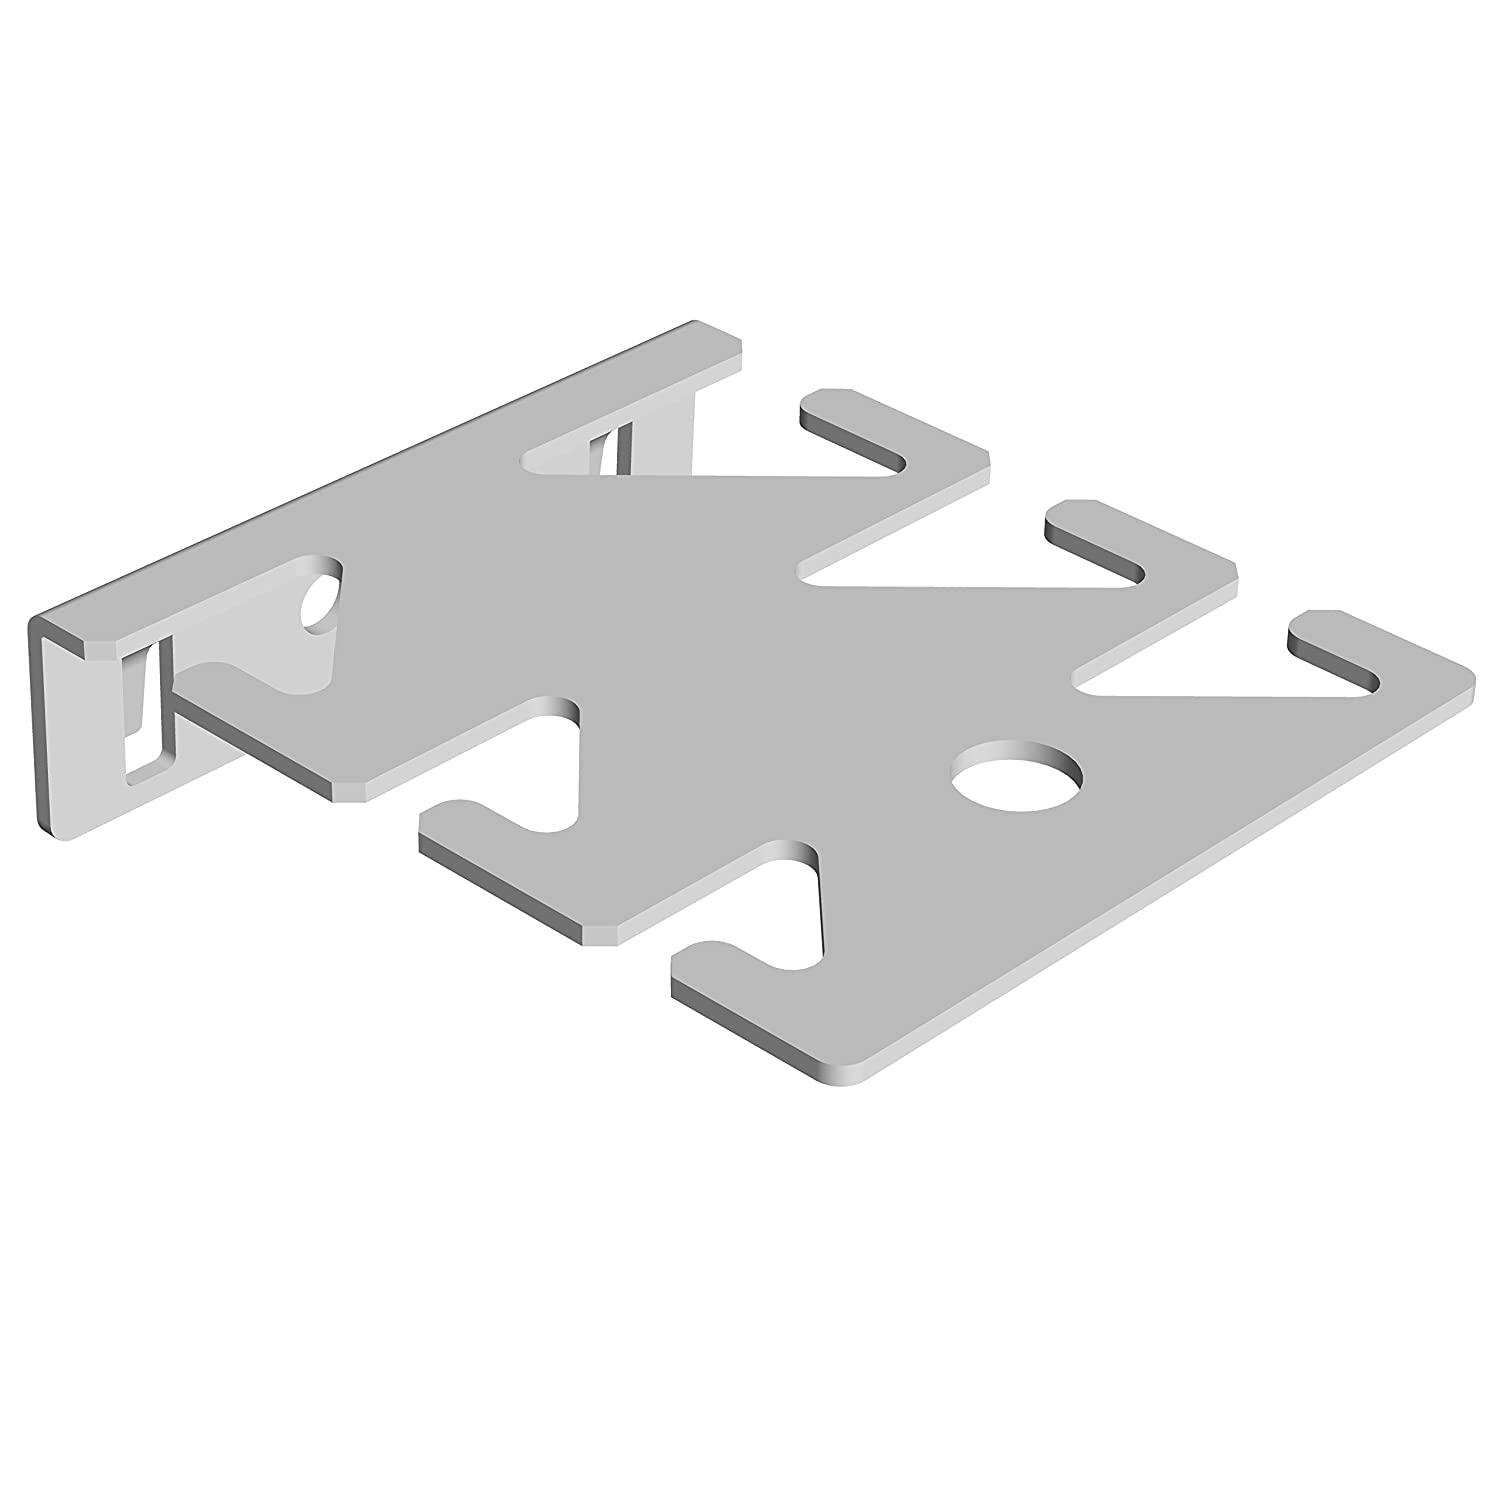 Element System 11407-00002 Tool Holder for Wrenches and Peg Board - White (6-Piece) DIY Element System